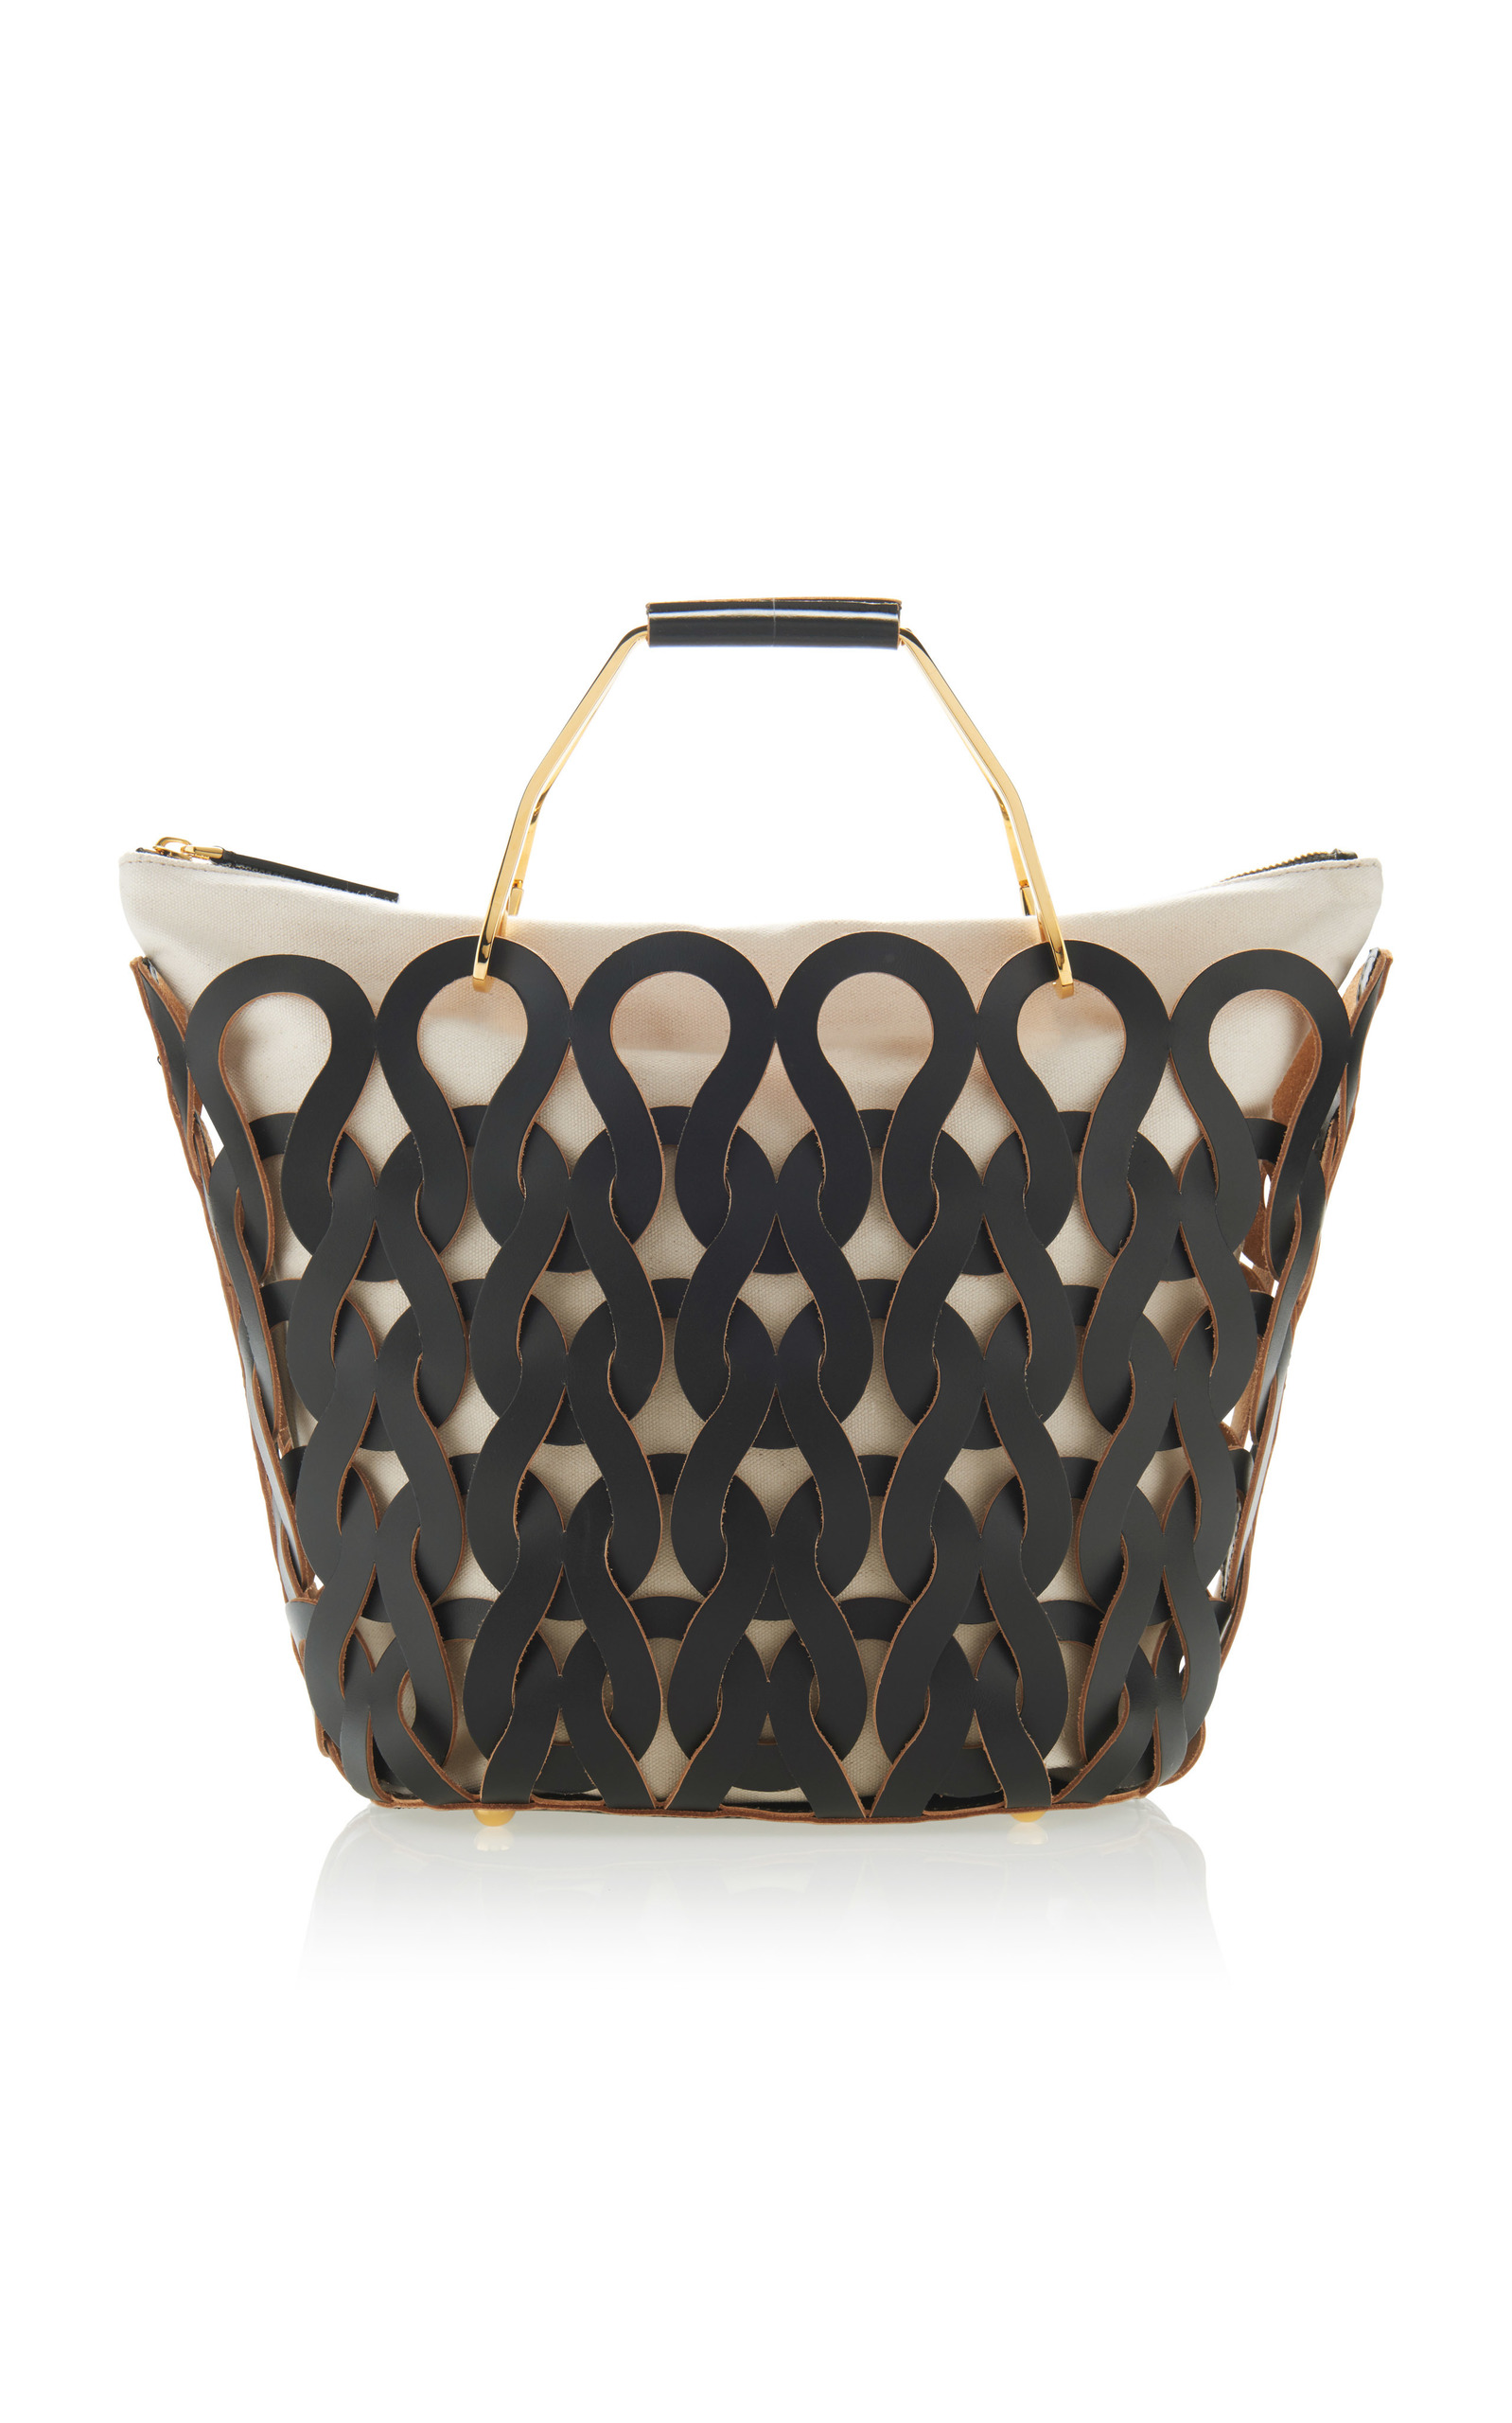 TRICOT WOVEN LEATHER AND CANVAS TOTE